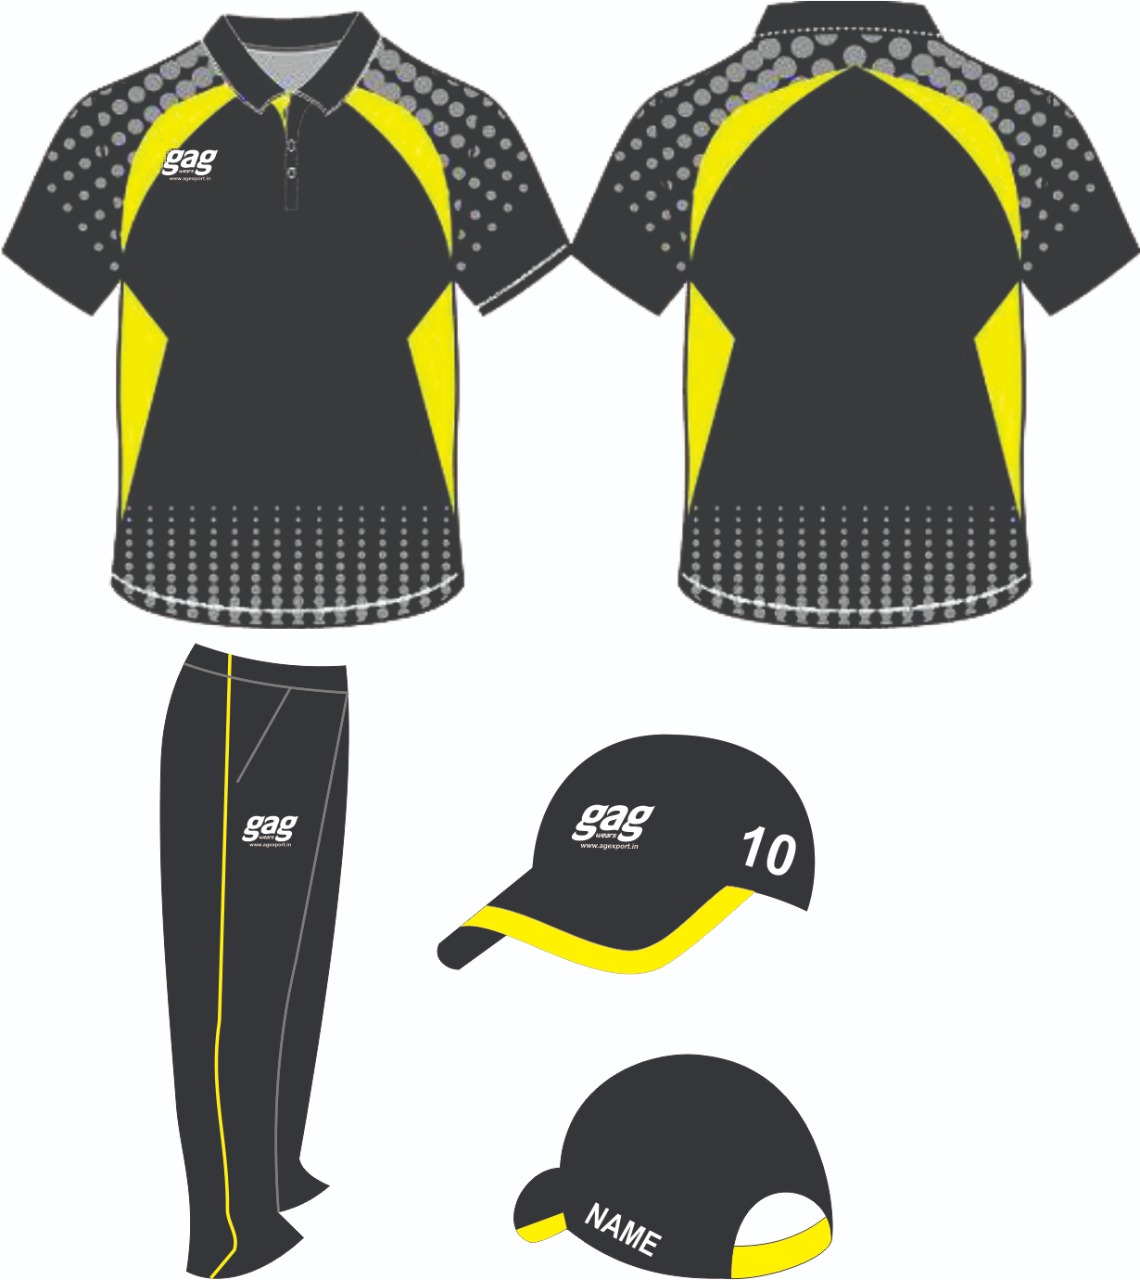 Cricket Uniform Manufacturers and Exporters in Howrah